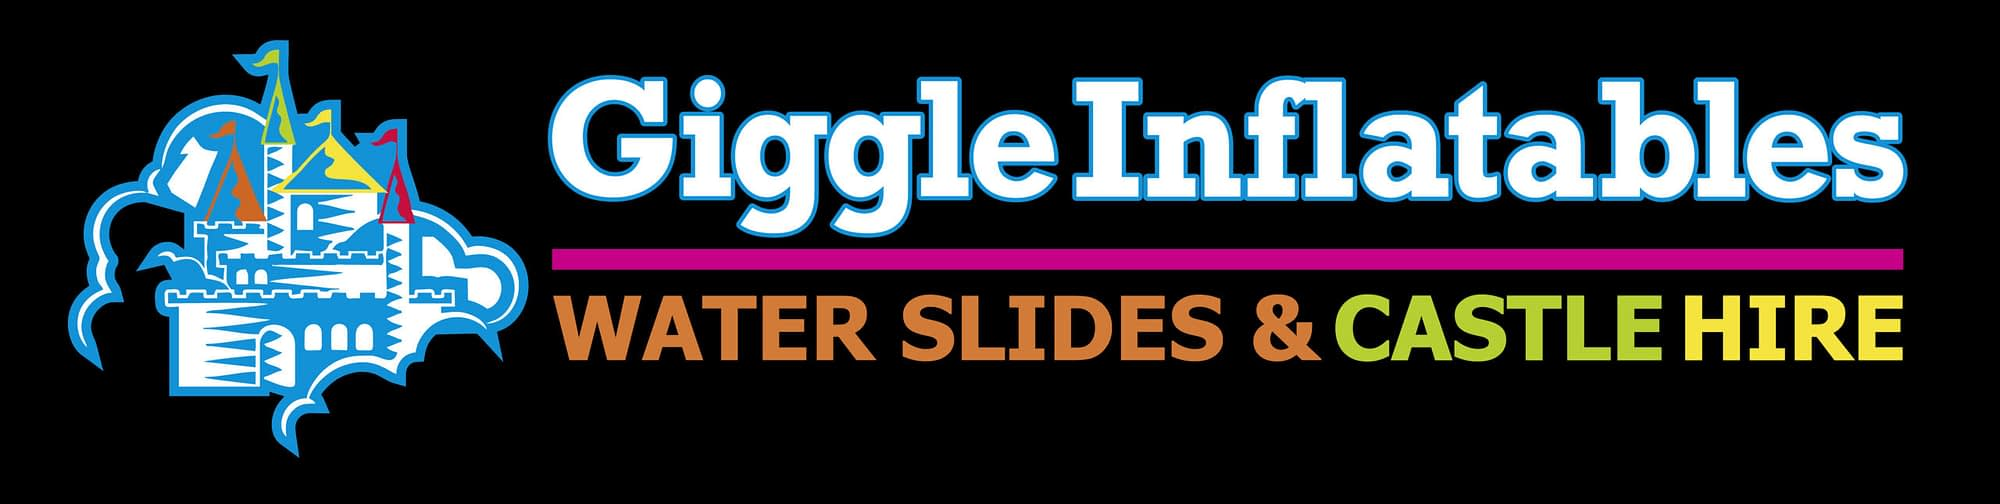 Giggle Inflatables